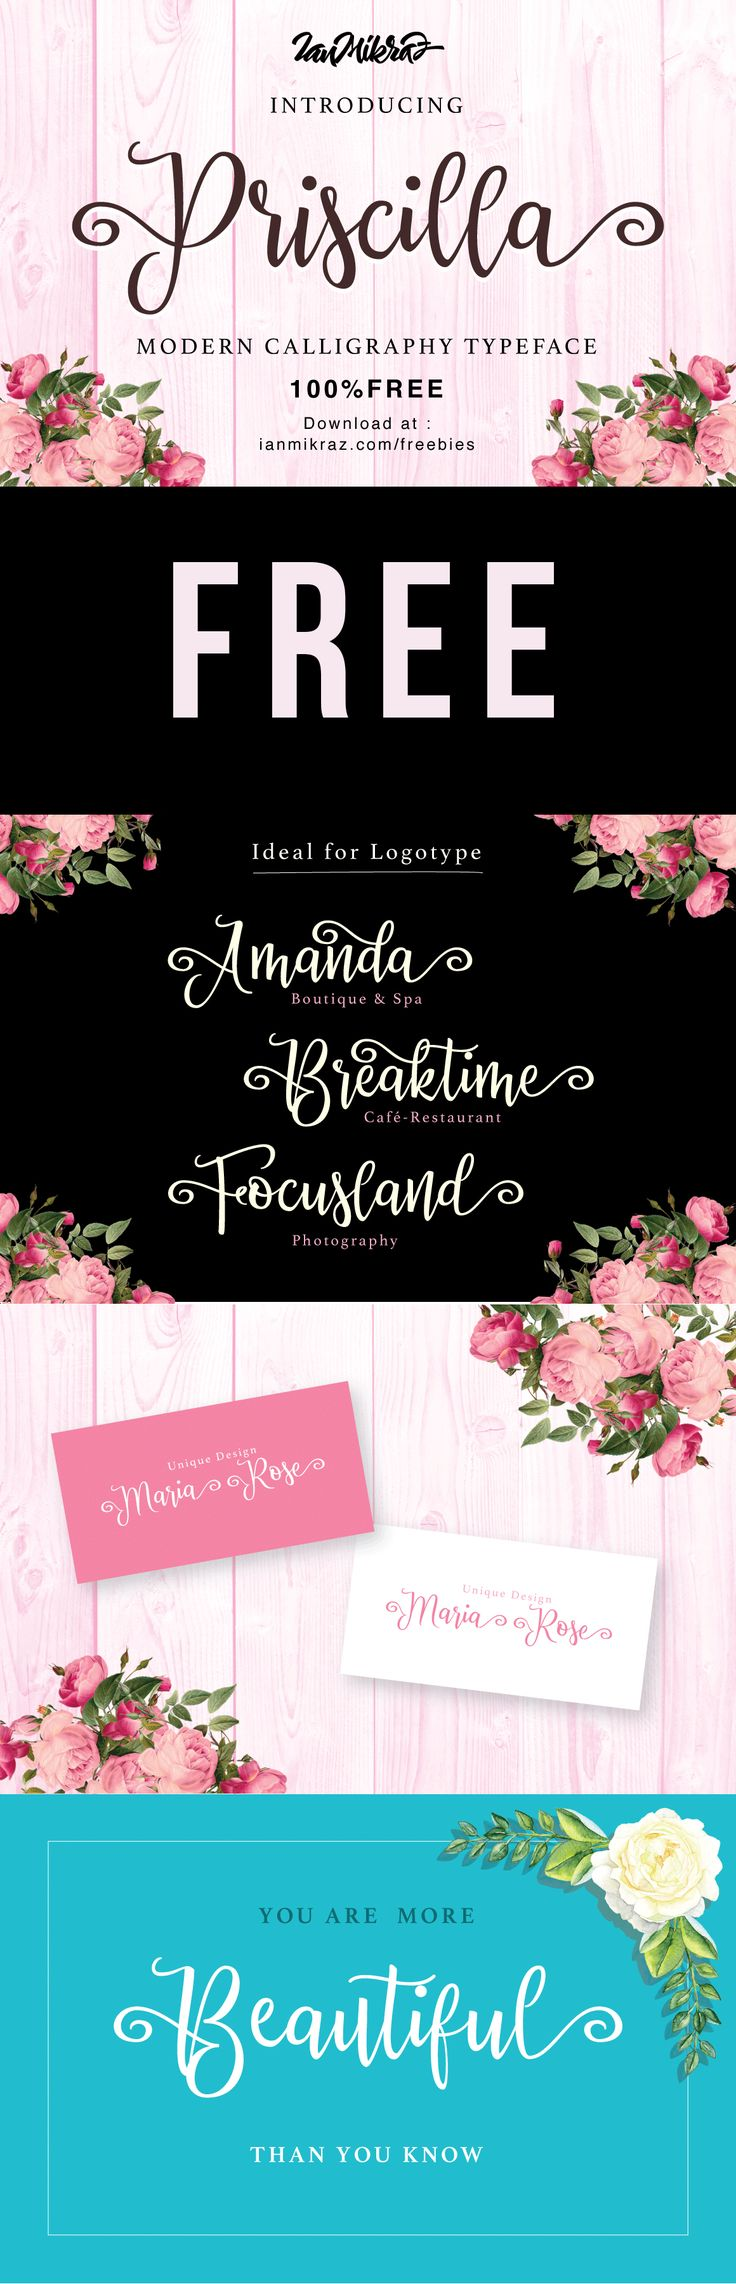 100% Free Priscilla Font! - Free Pretty Things For You